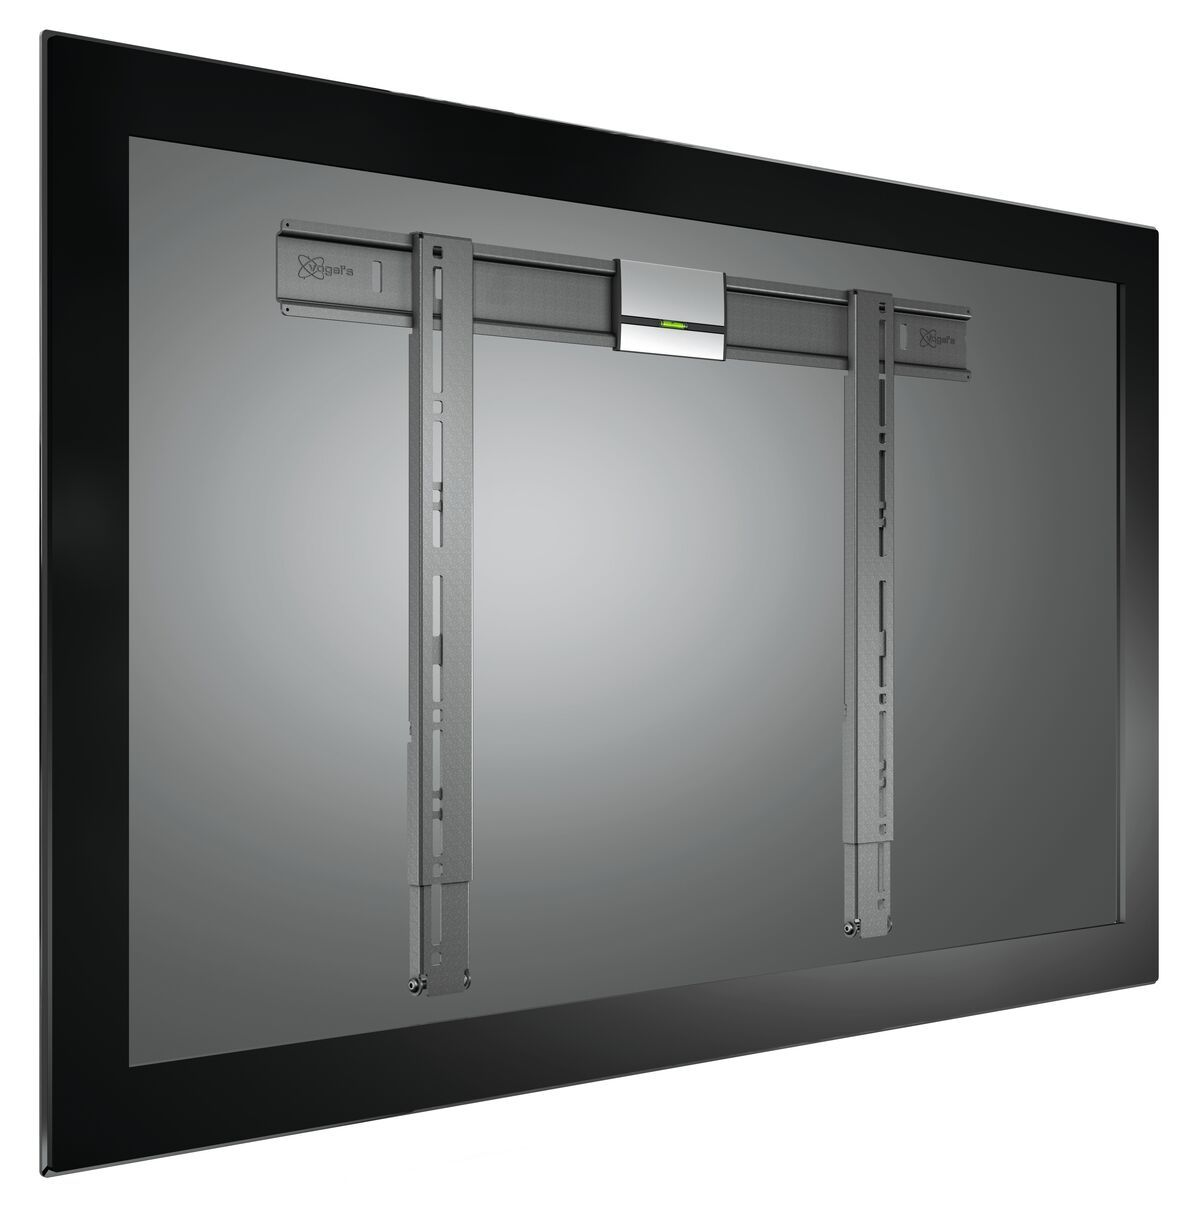 Vogel's THIN 305 UltraThin Fixed TV Wall Mount - Suitable for 40 up to 65 inch TVs up to 40 kg - Application